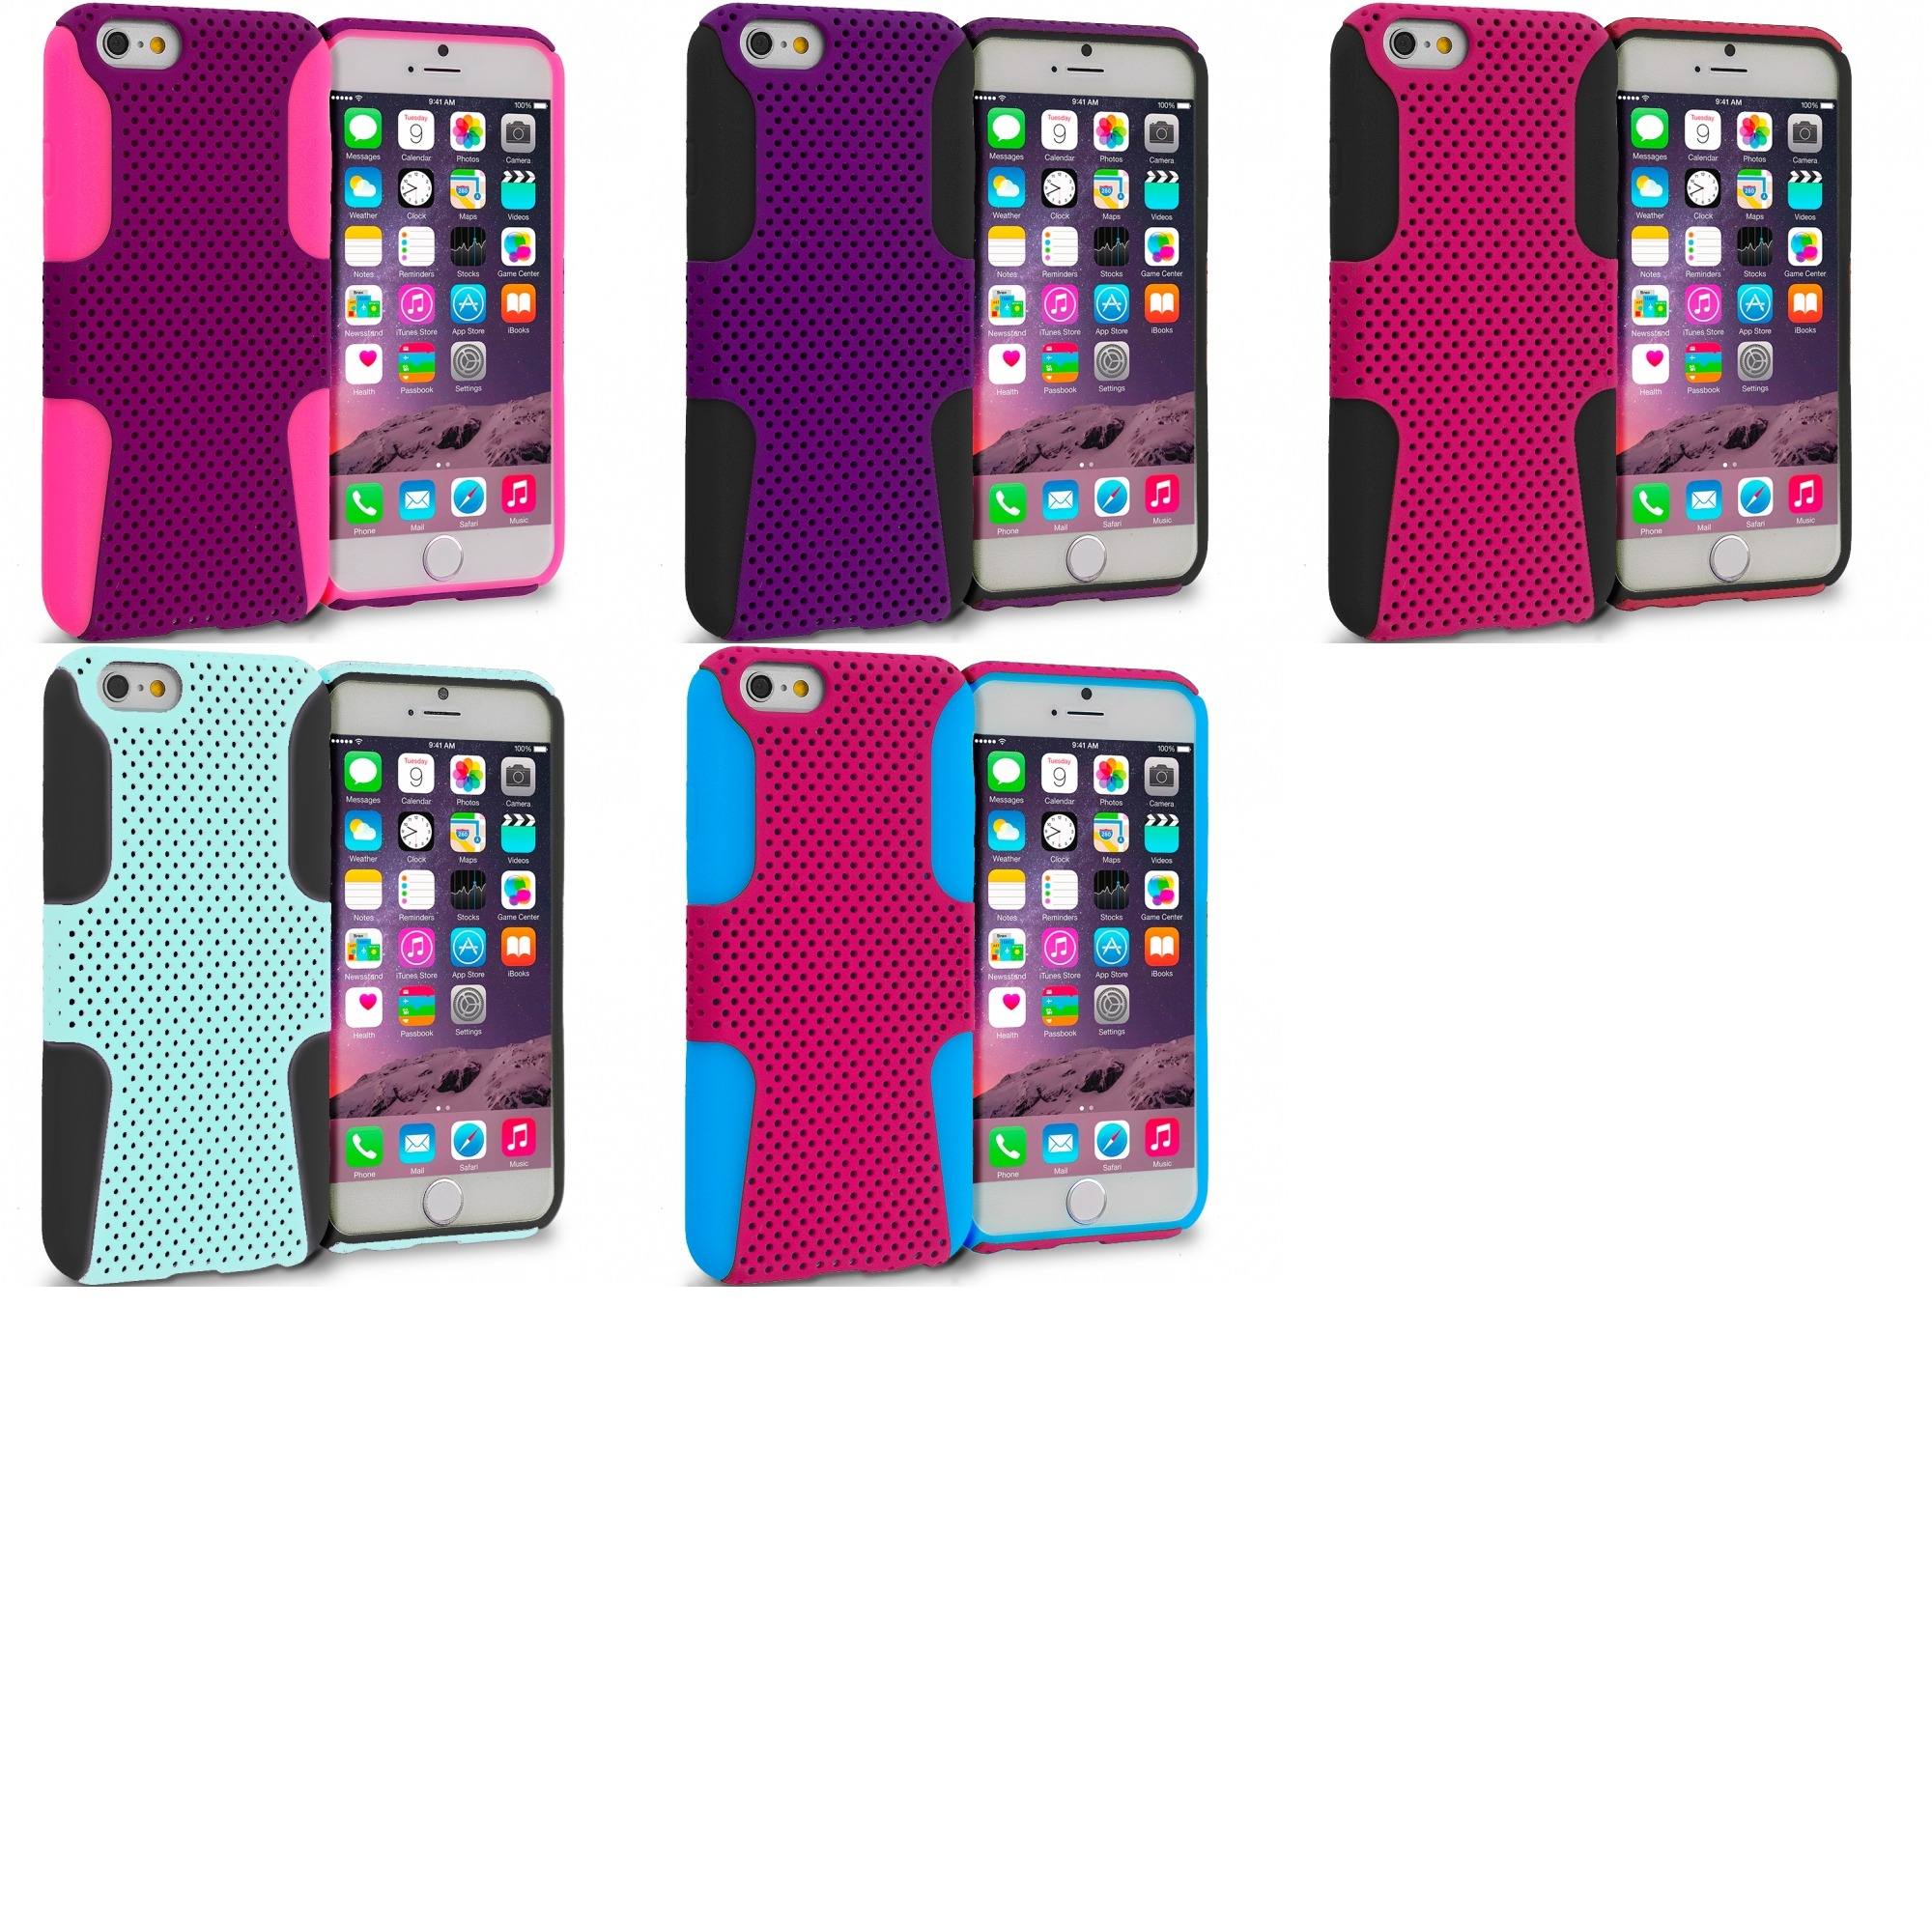 Apple iPhone 6 5 in 1 Bundle - Hybrid Mesh Hard/Soft Case Cover